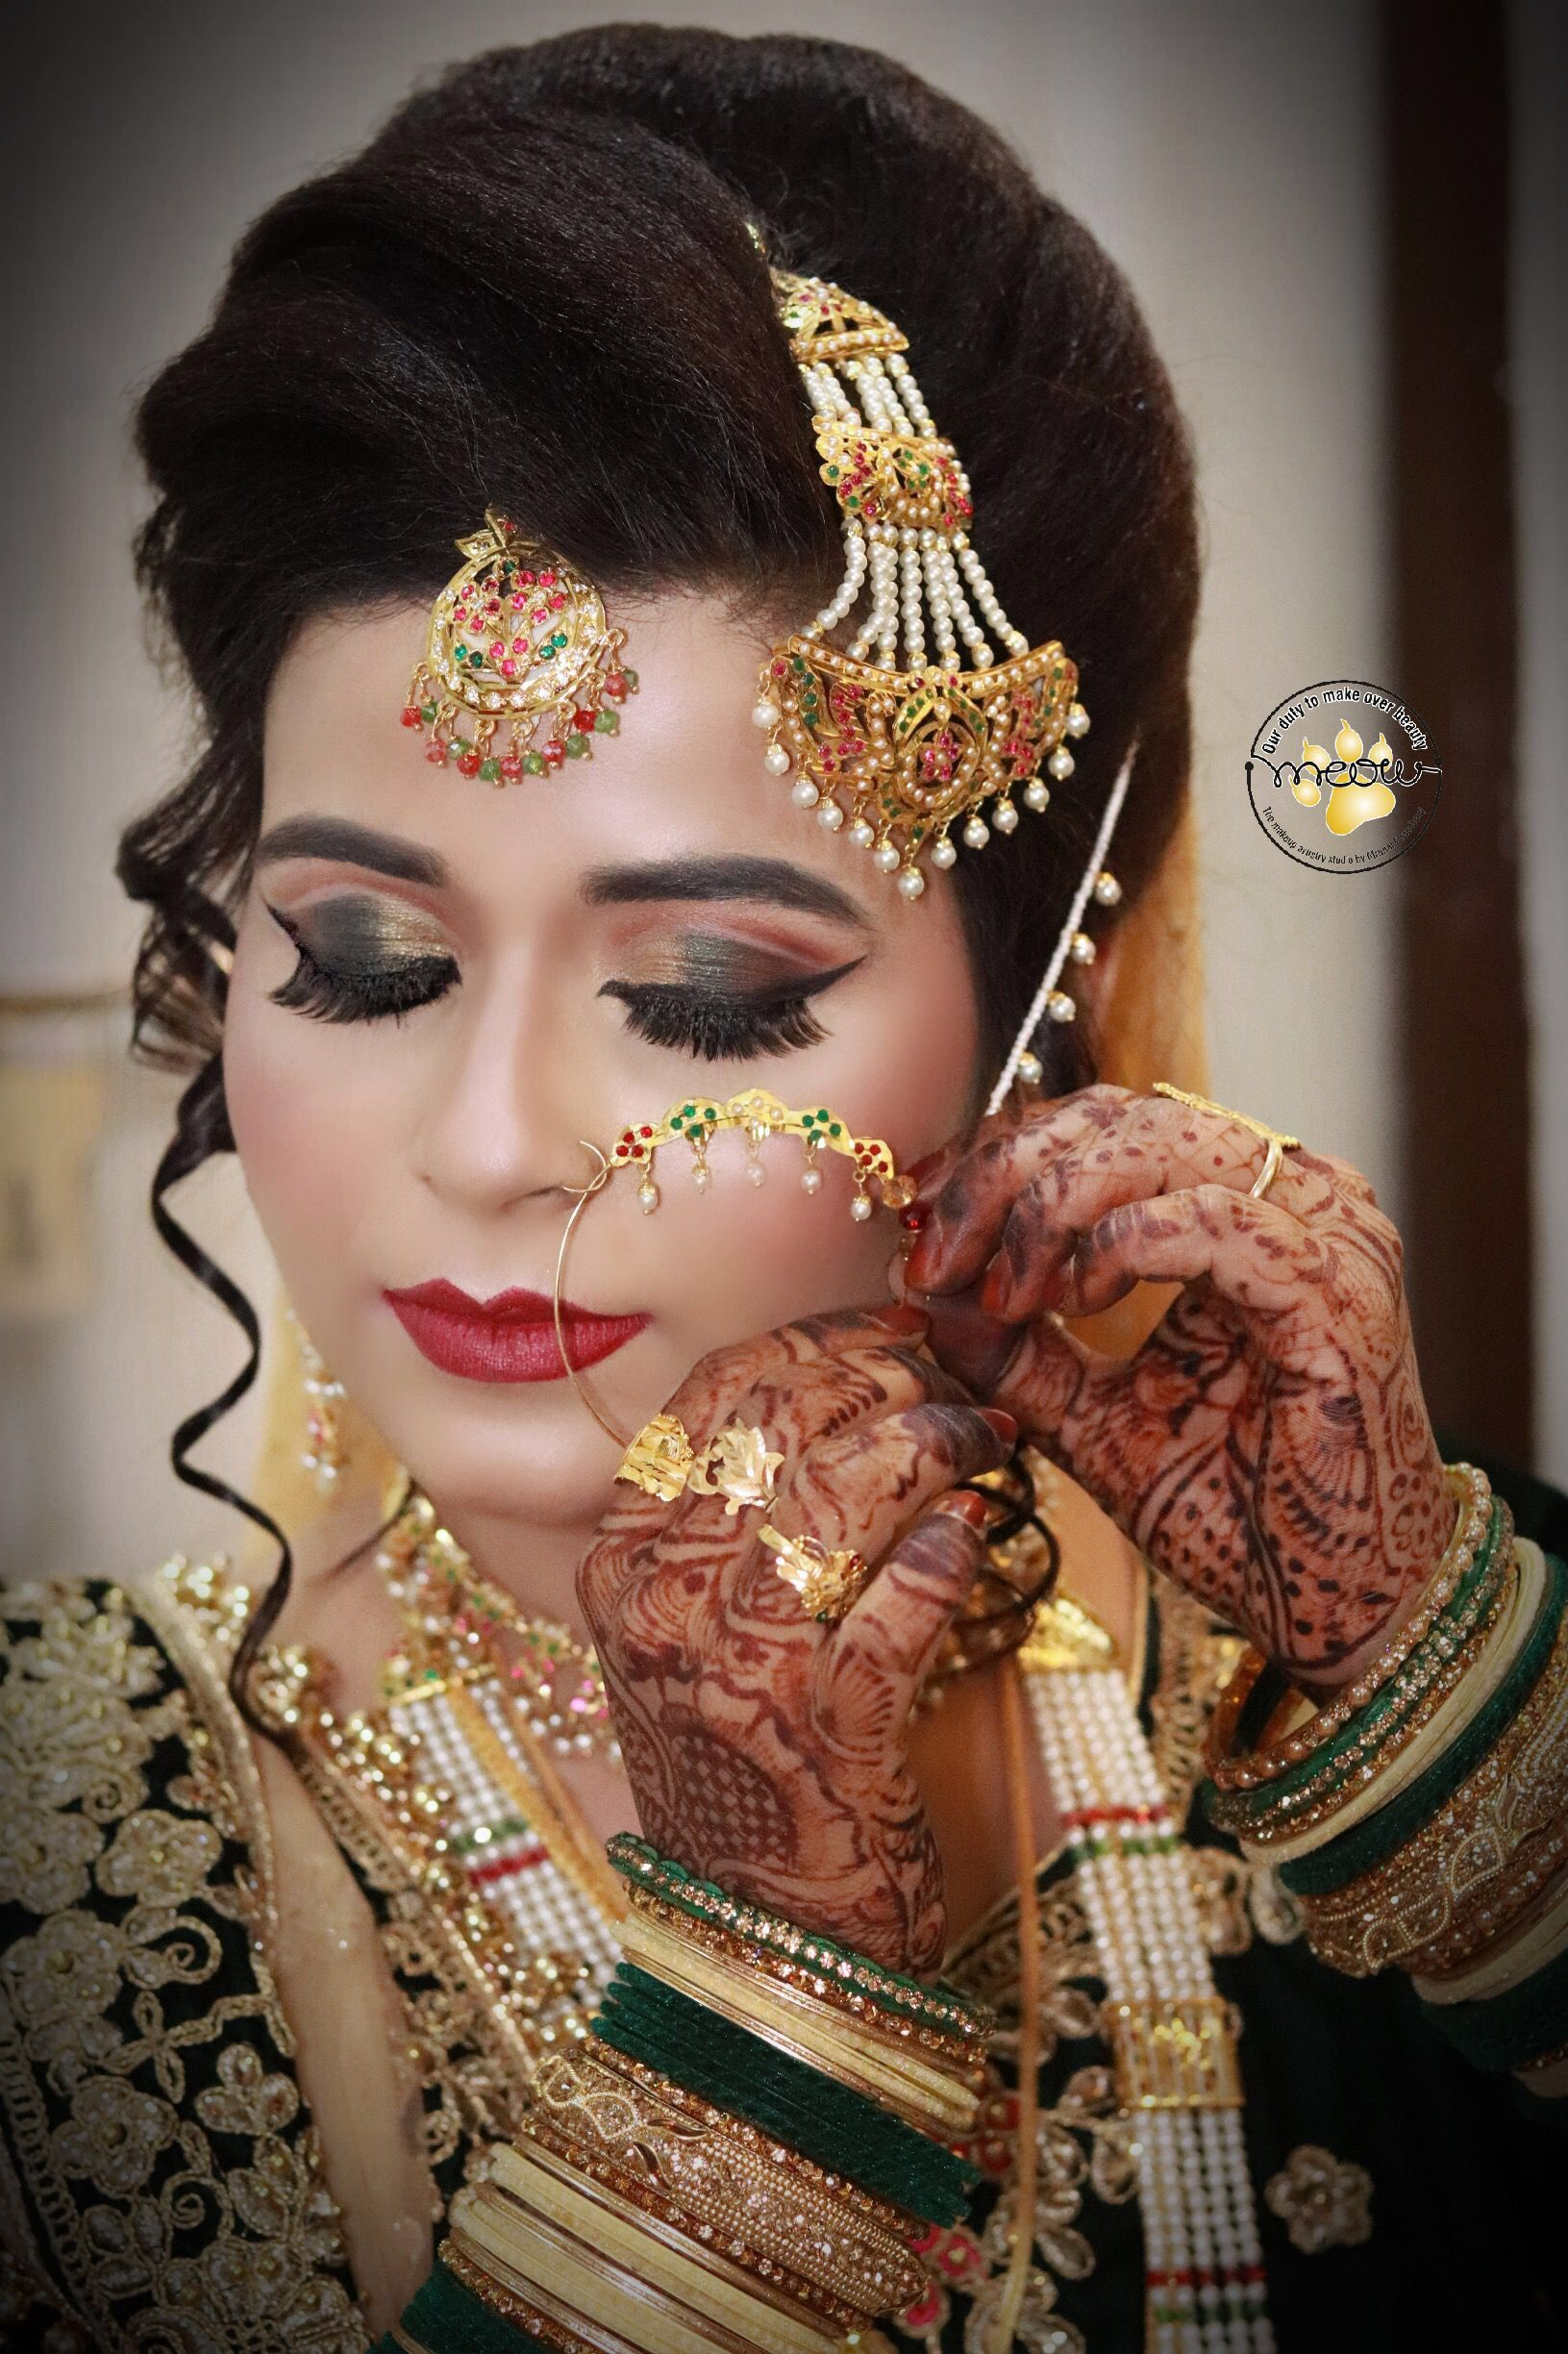 pin by meow makeup artistry on indian bride makeup shoot | pinterest